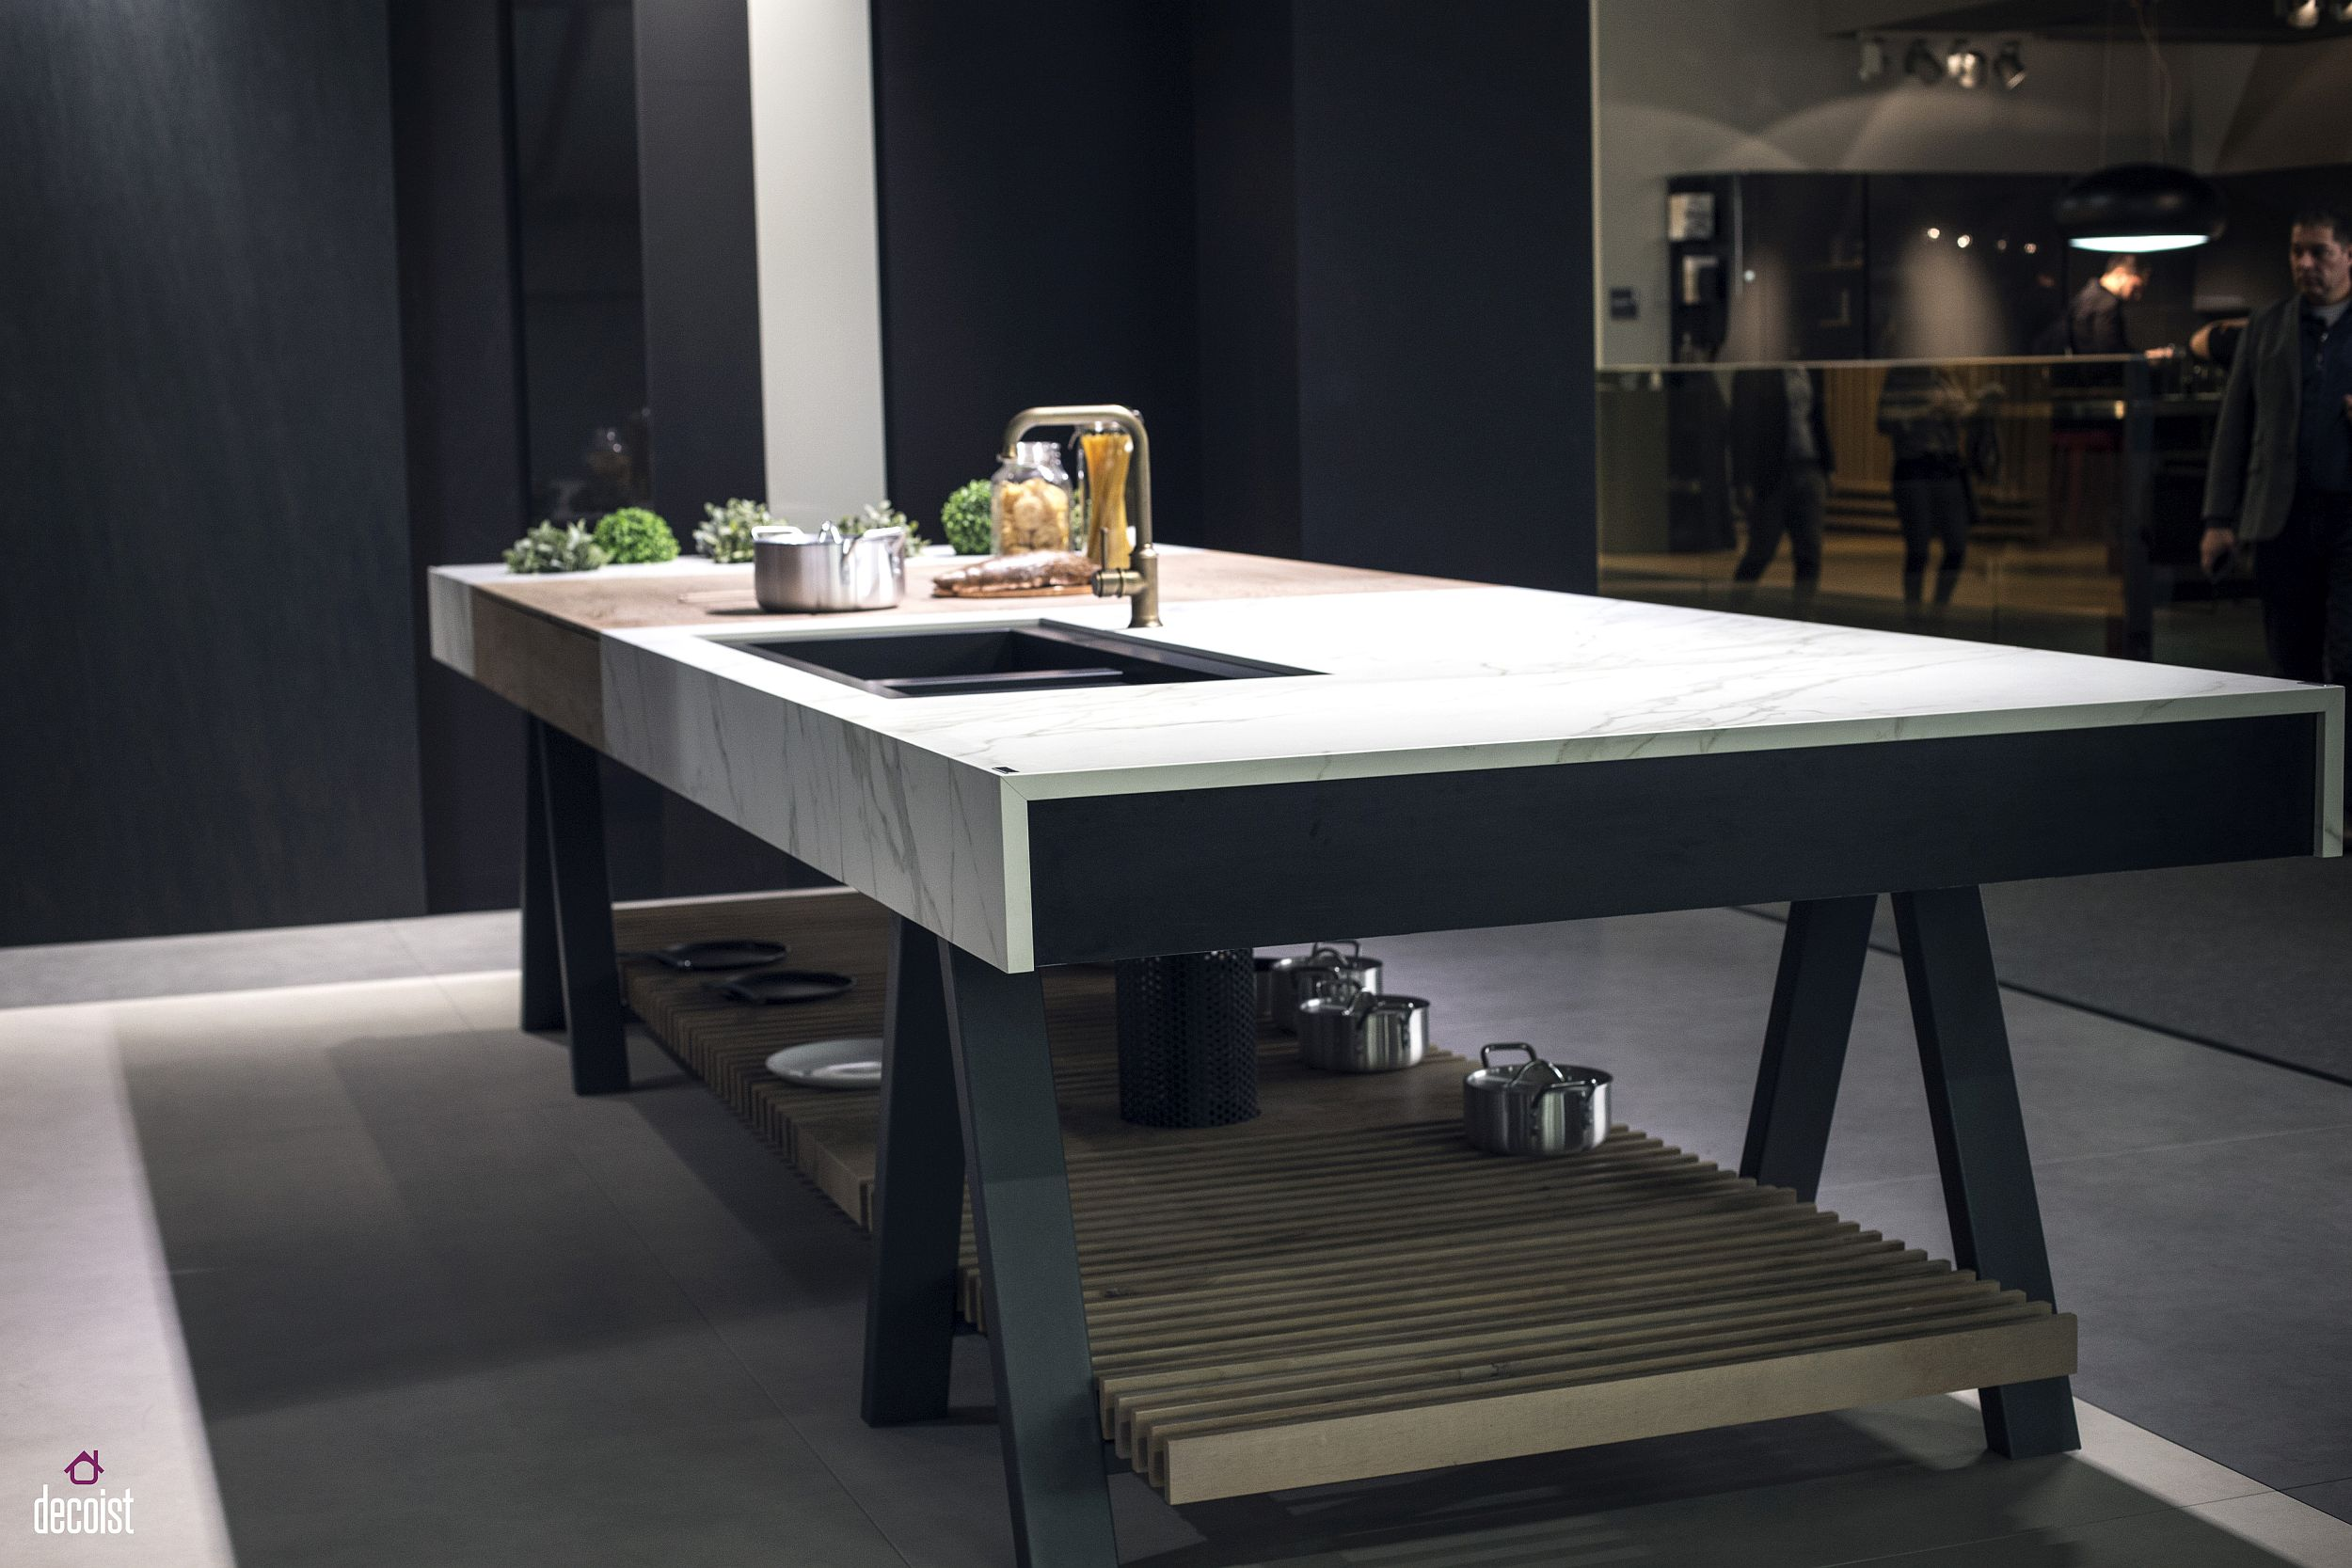 Neo Lith creates an open and exclusive kitchen island fill of contemporary charm